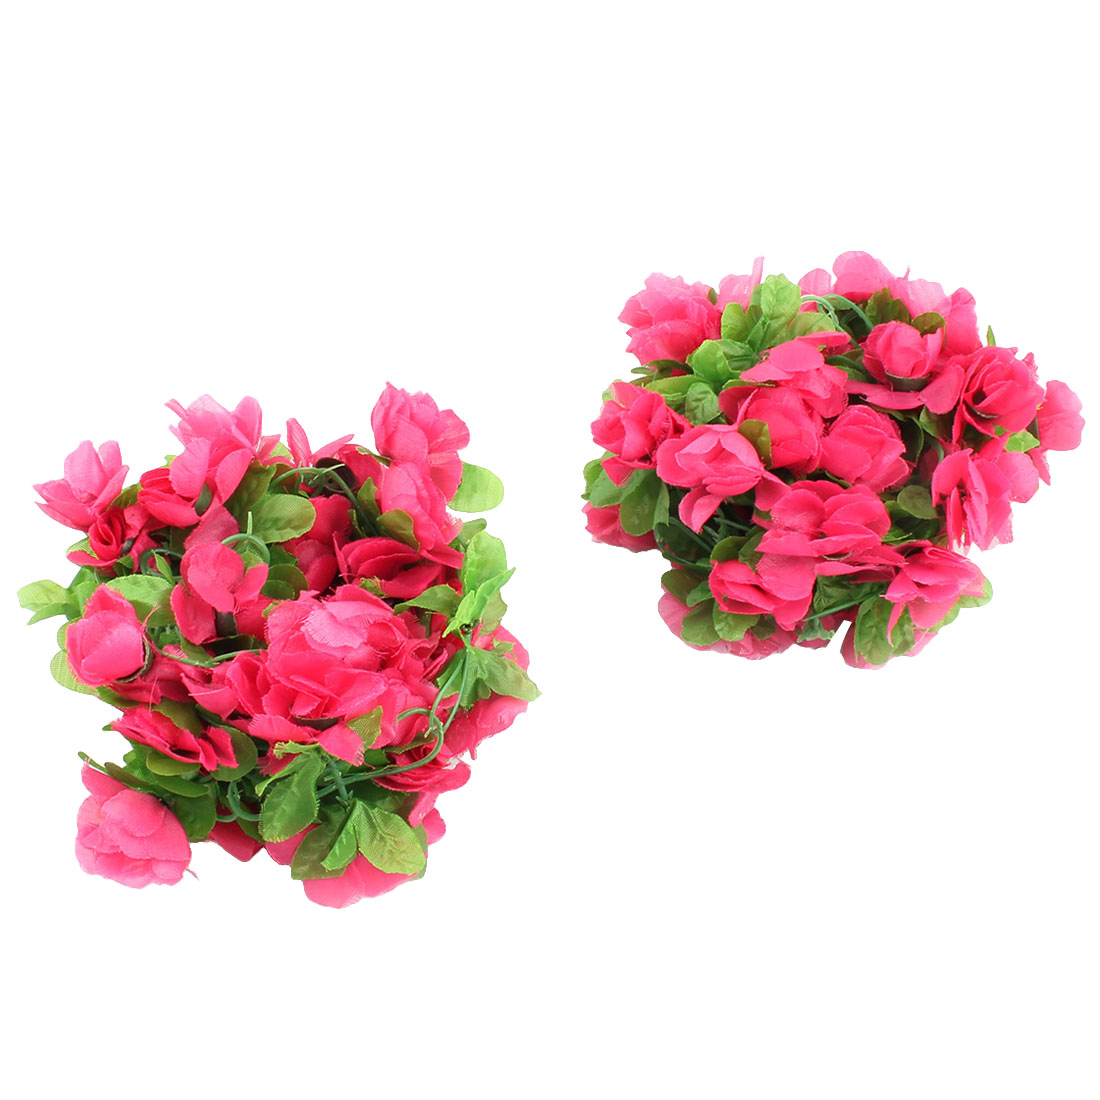 Grapes Orchard Vine Artificial Flower Leaf Wall Decorative Hanging Green Fuchsia 2M 2pcs